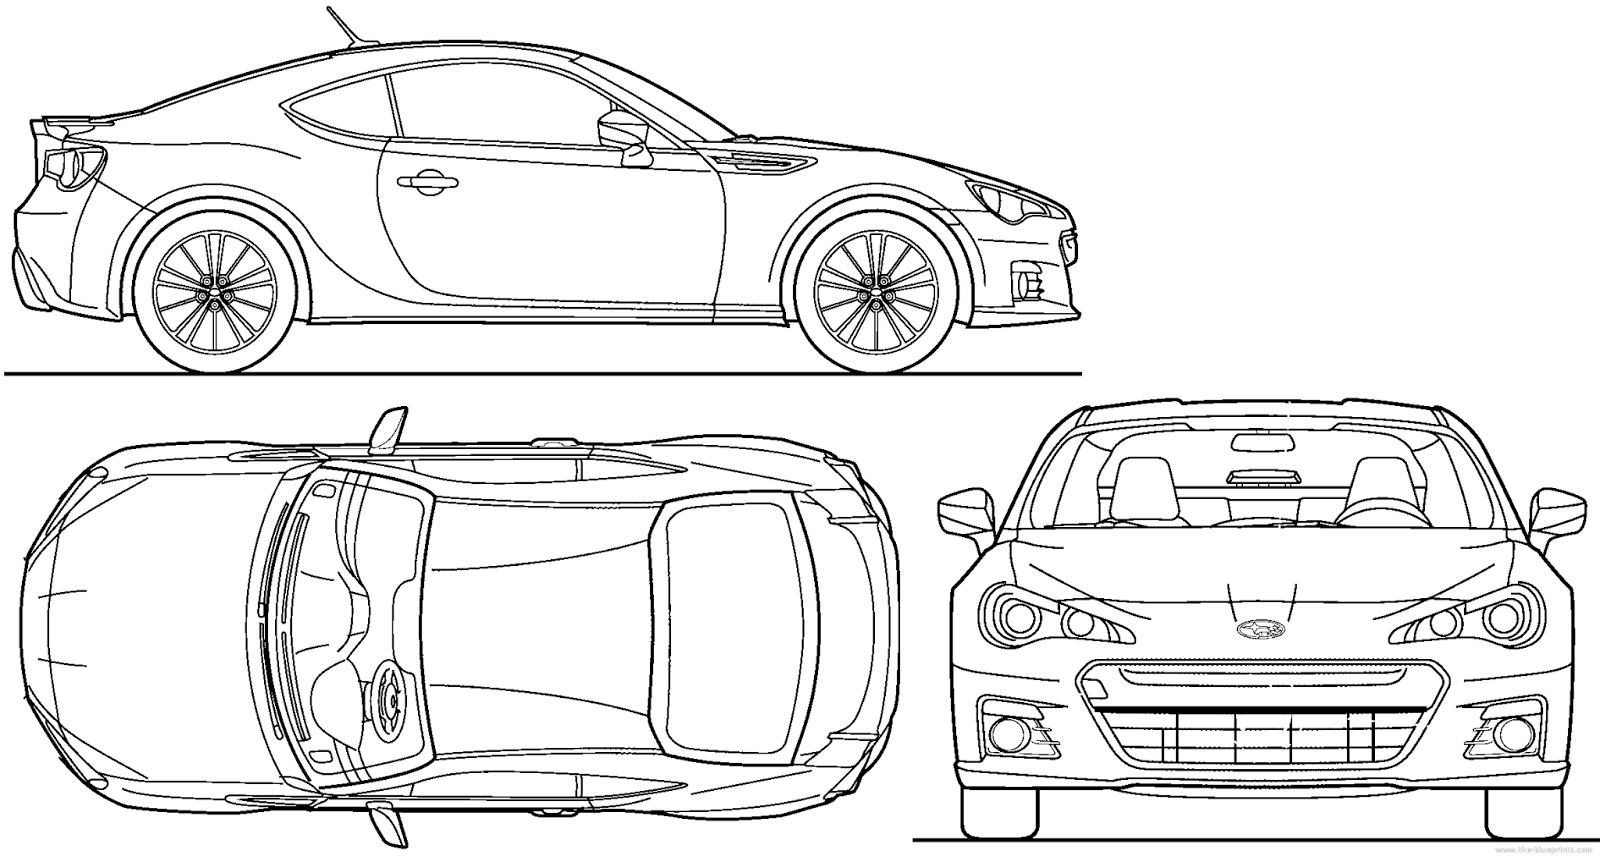 Cgfrog most loved car blueprints for 3d modeling for Printable blueprints